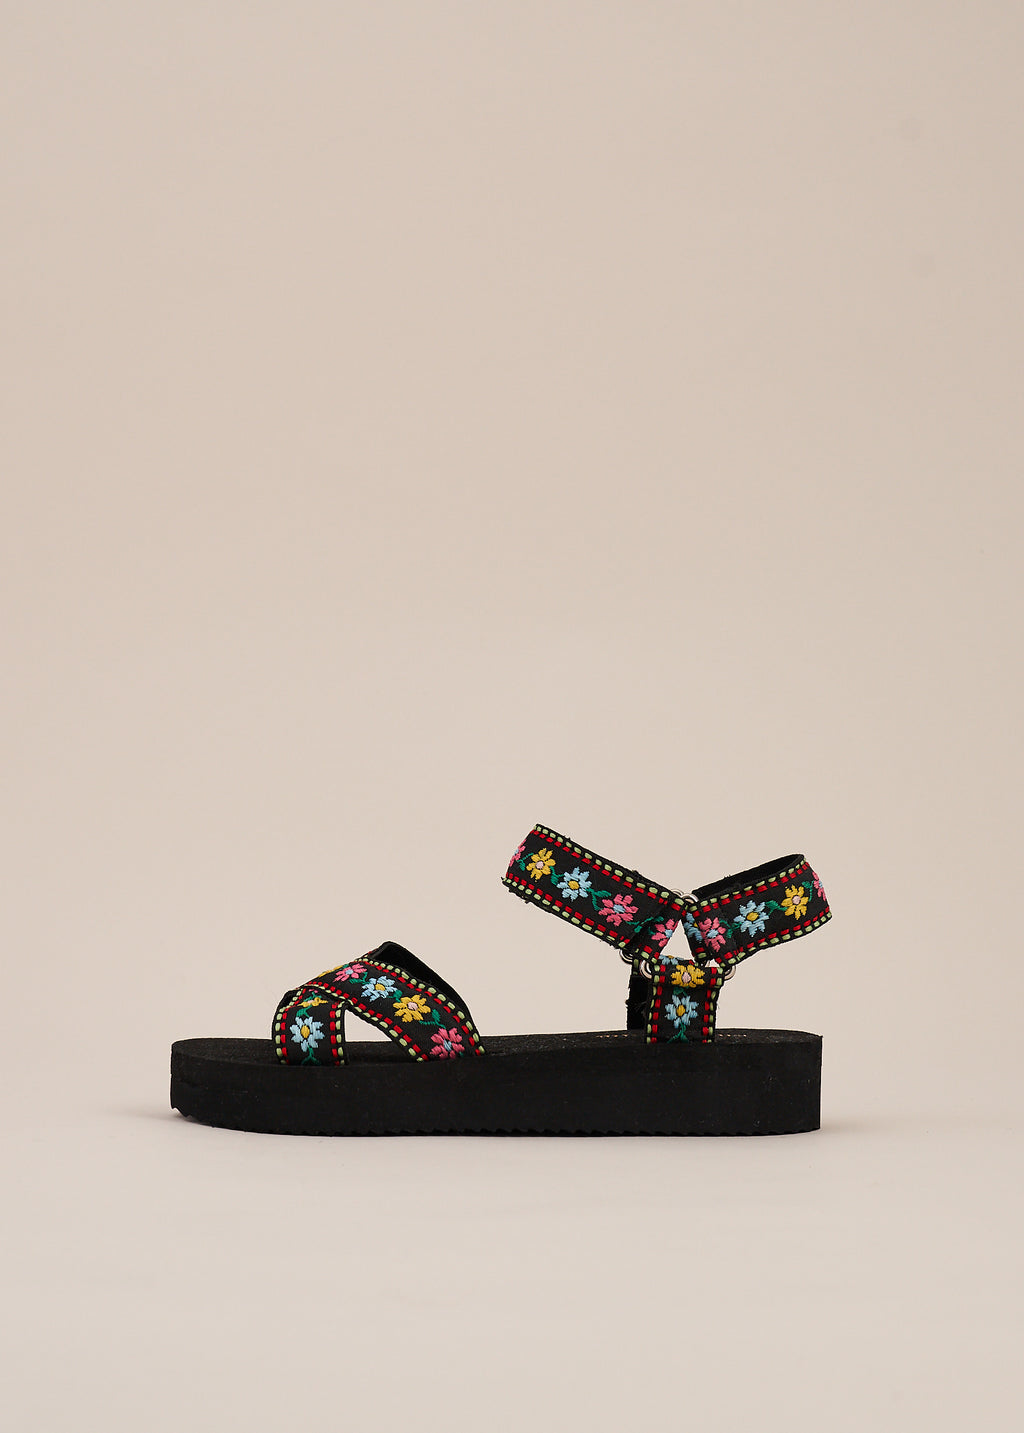 Michiko velcro strap black x over sports strap sandal with delicate floral embroidery and low comfortable wedge by Miss L Fire.  Vegetarian shoes.